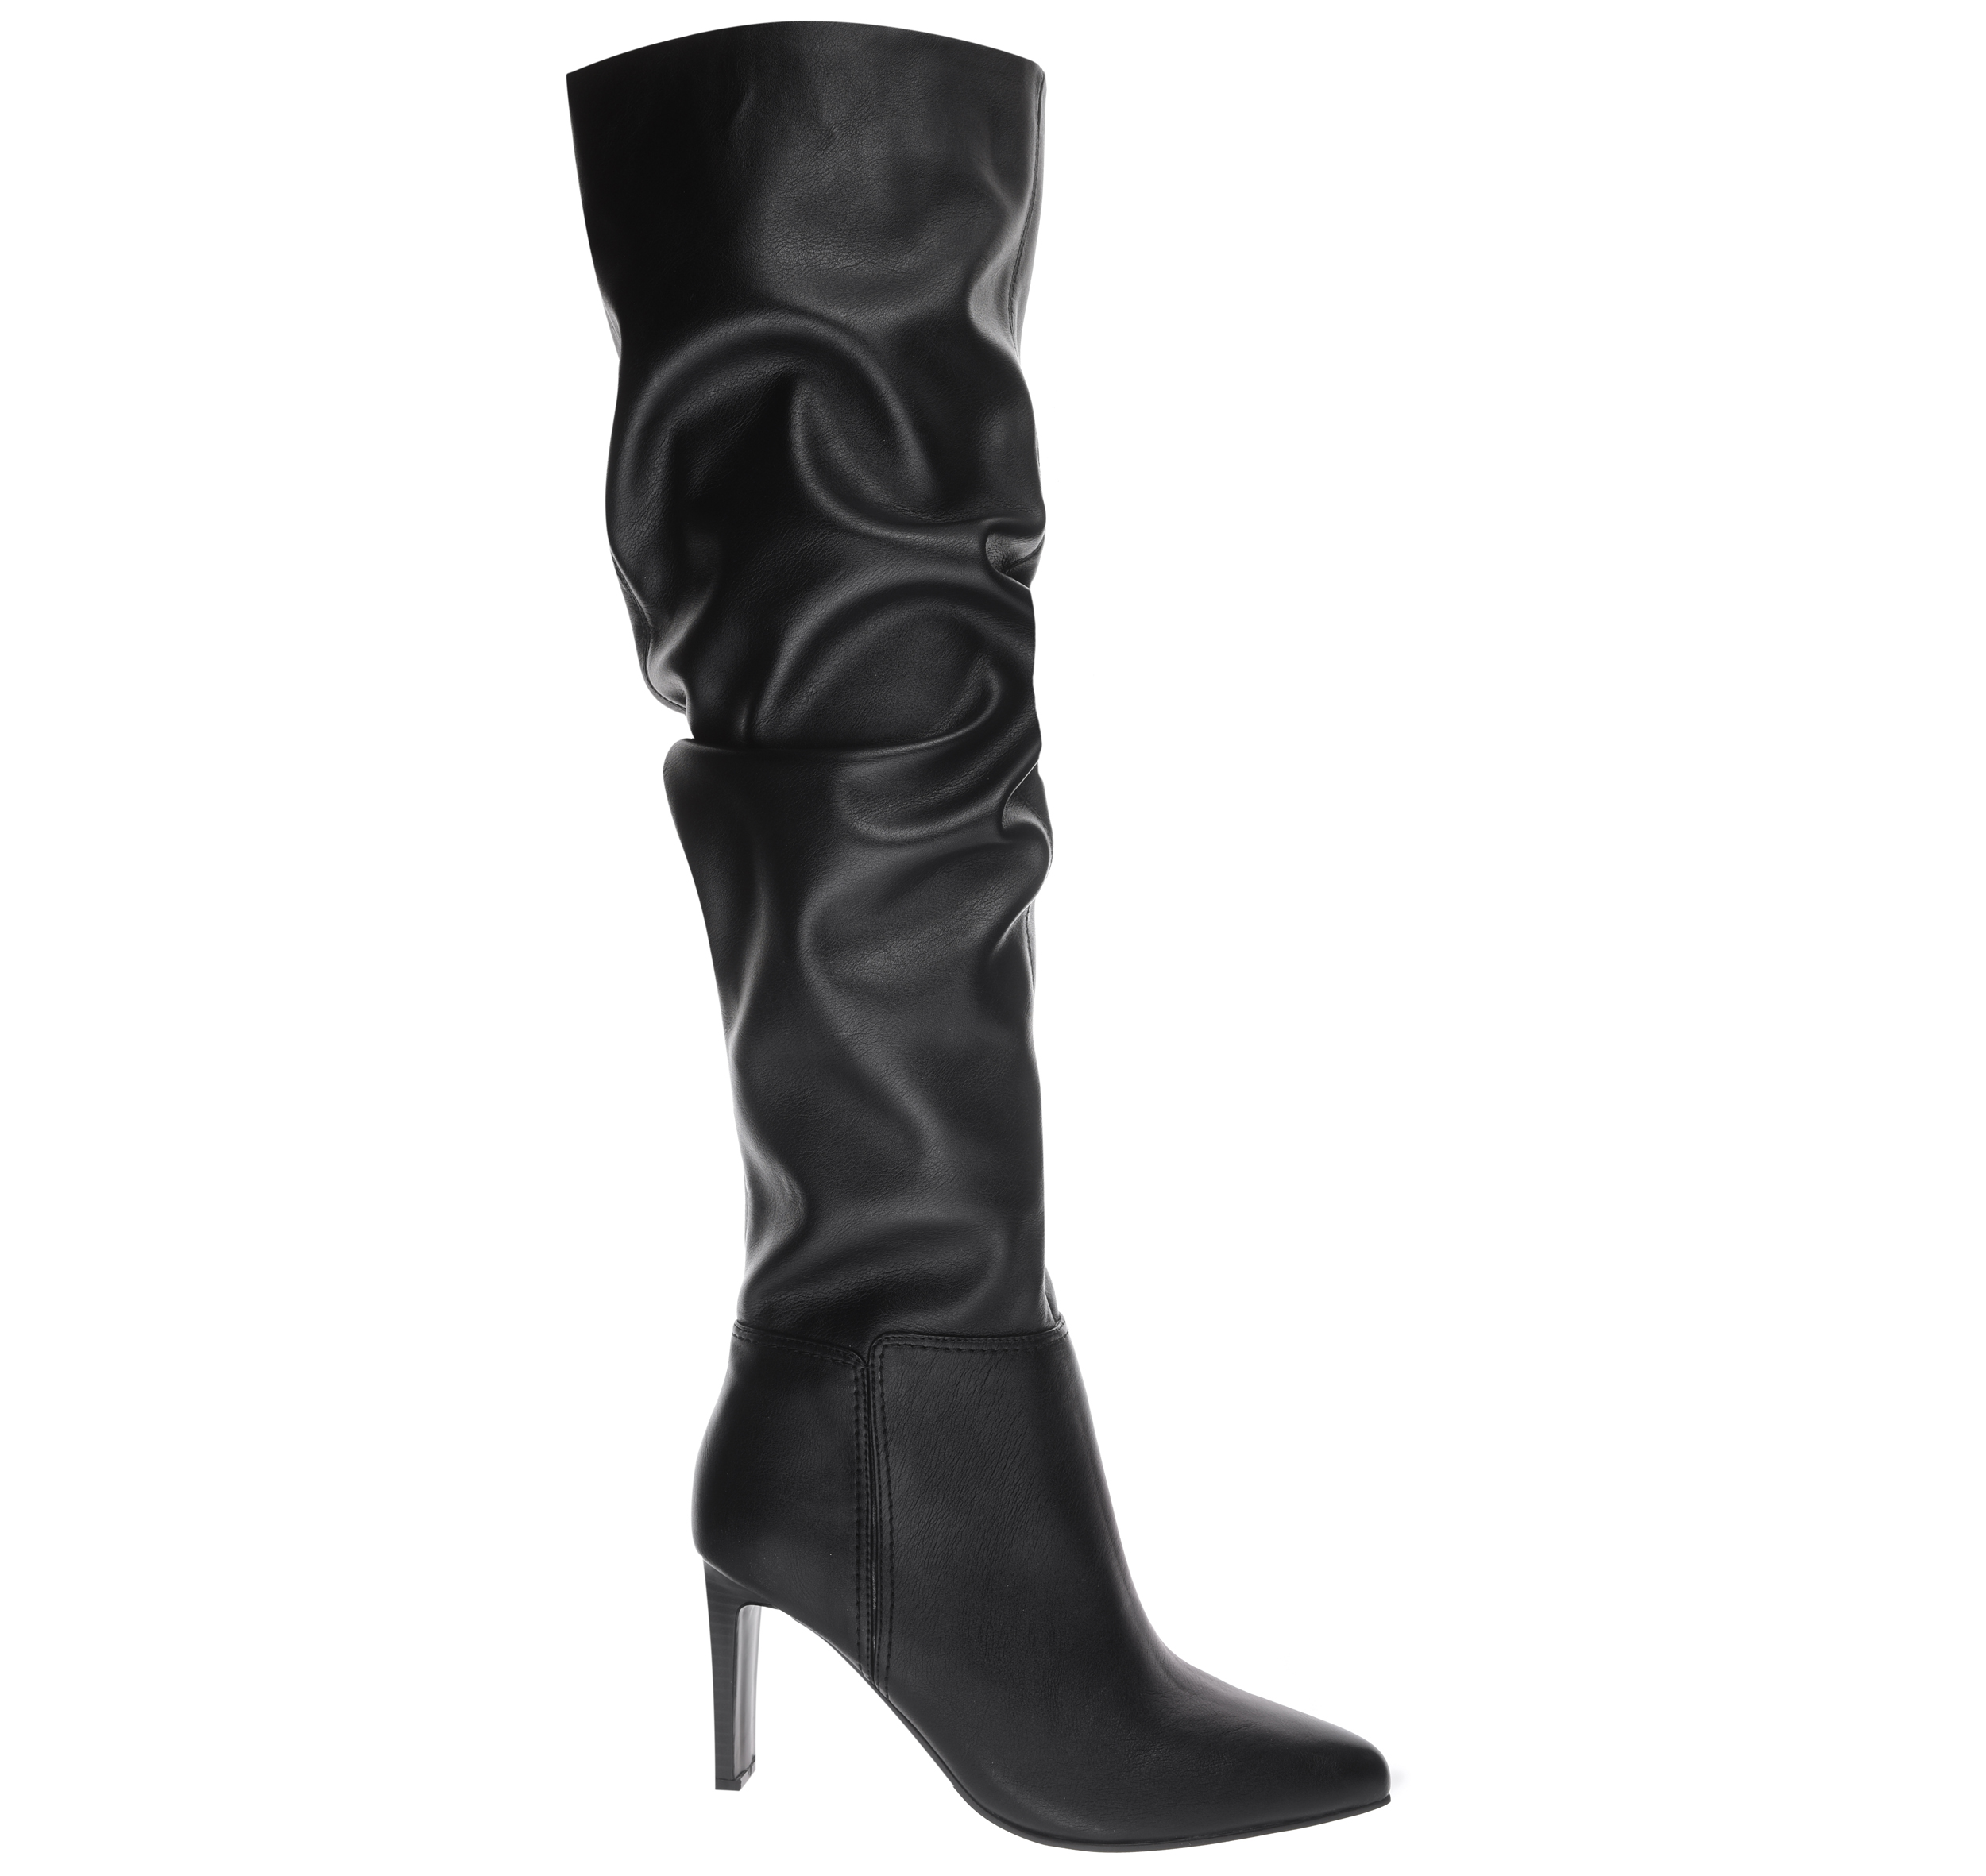 Wallis Black Leather Slouched Knee High Boots, £69/AED311.45